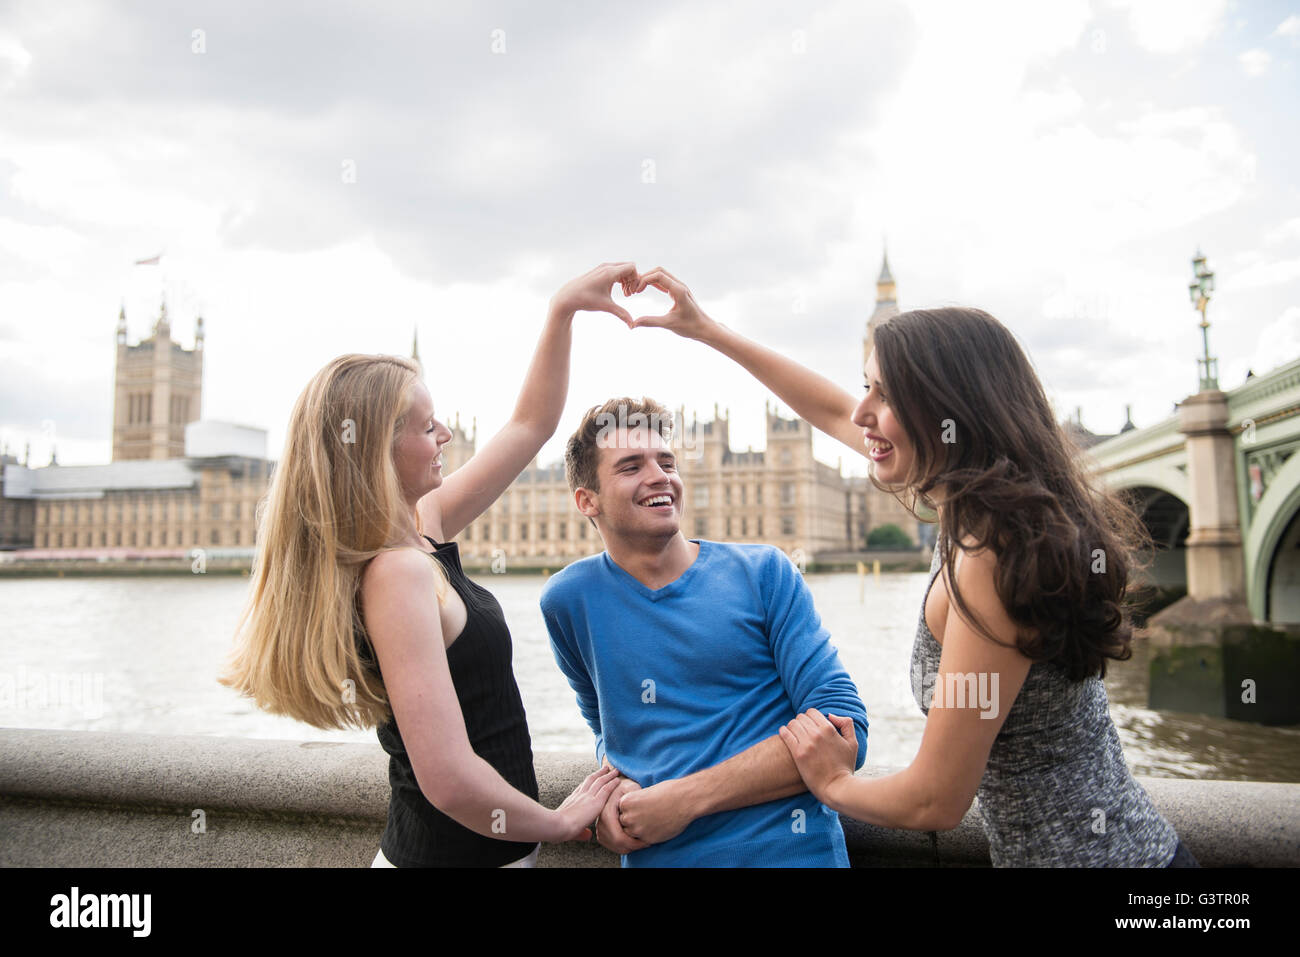 Three friends make a heart shape with their hands with the Houses of Parliament in the background. - Stock Image